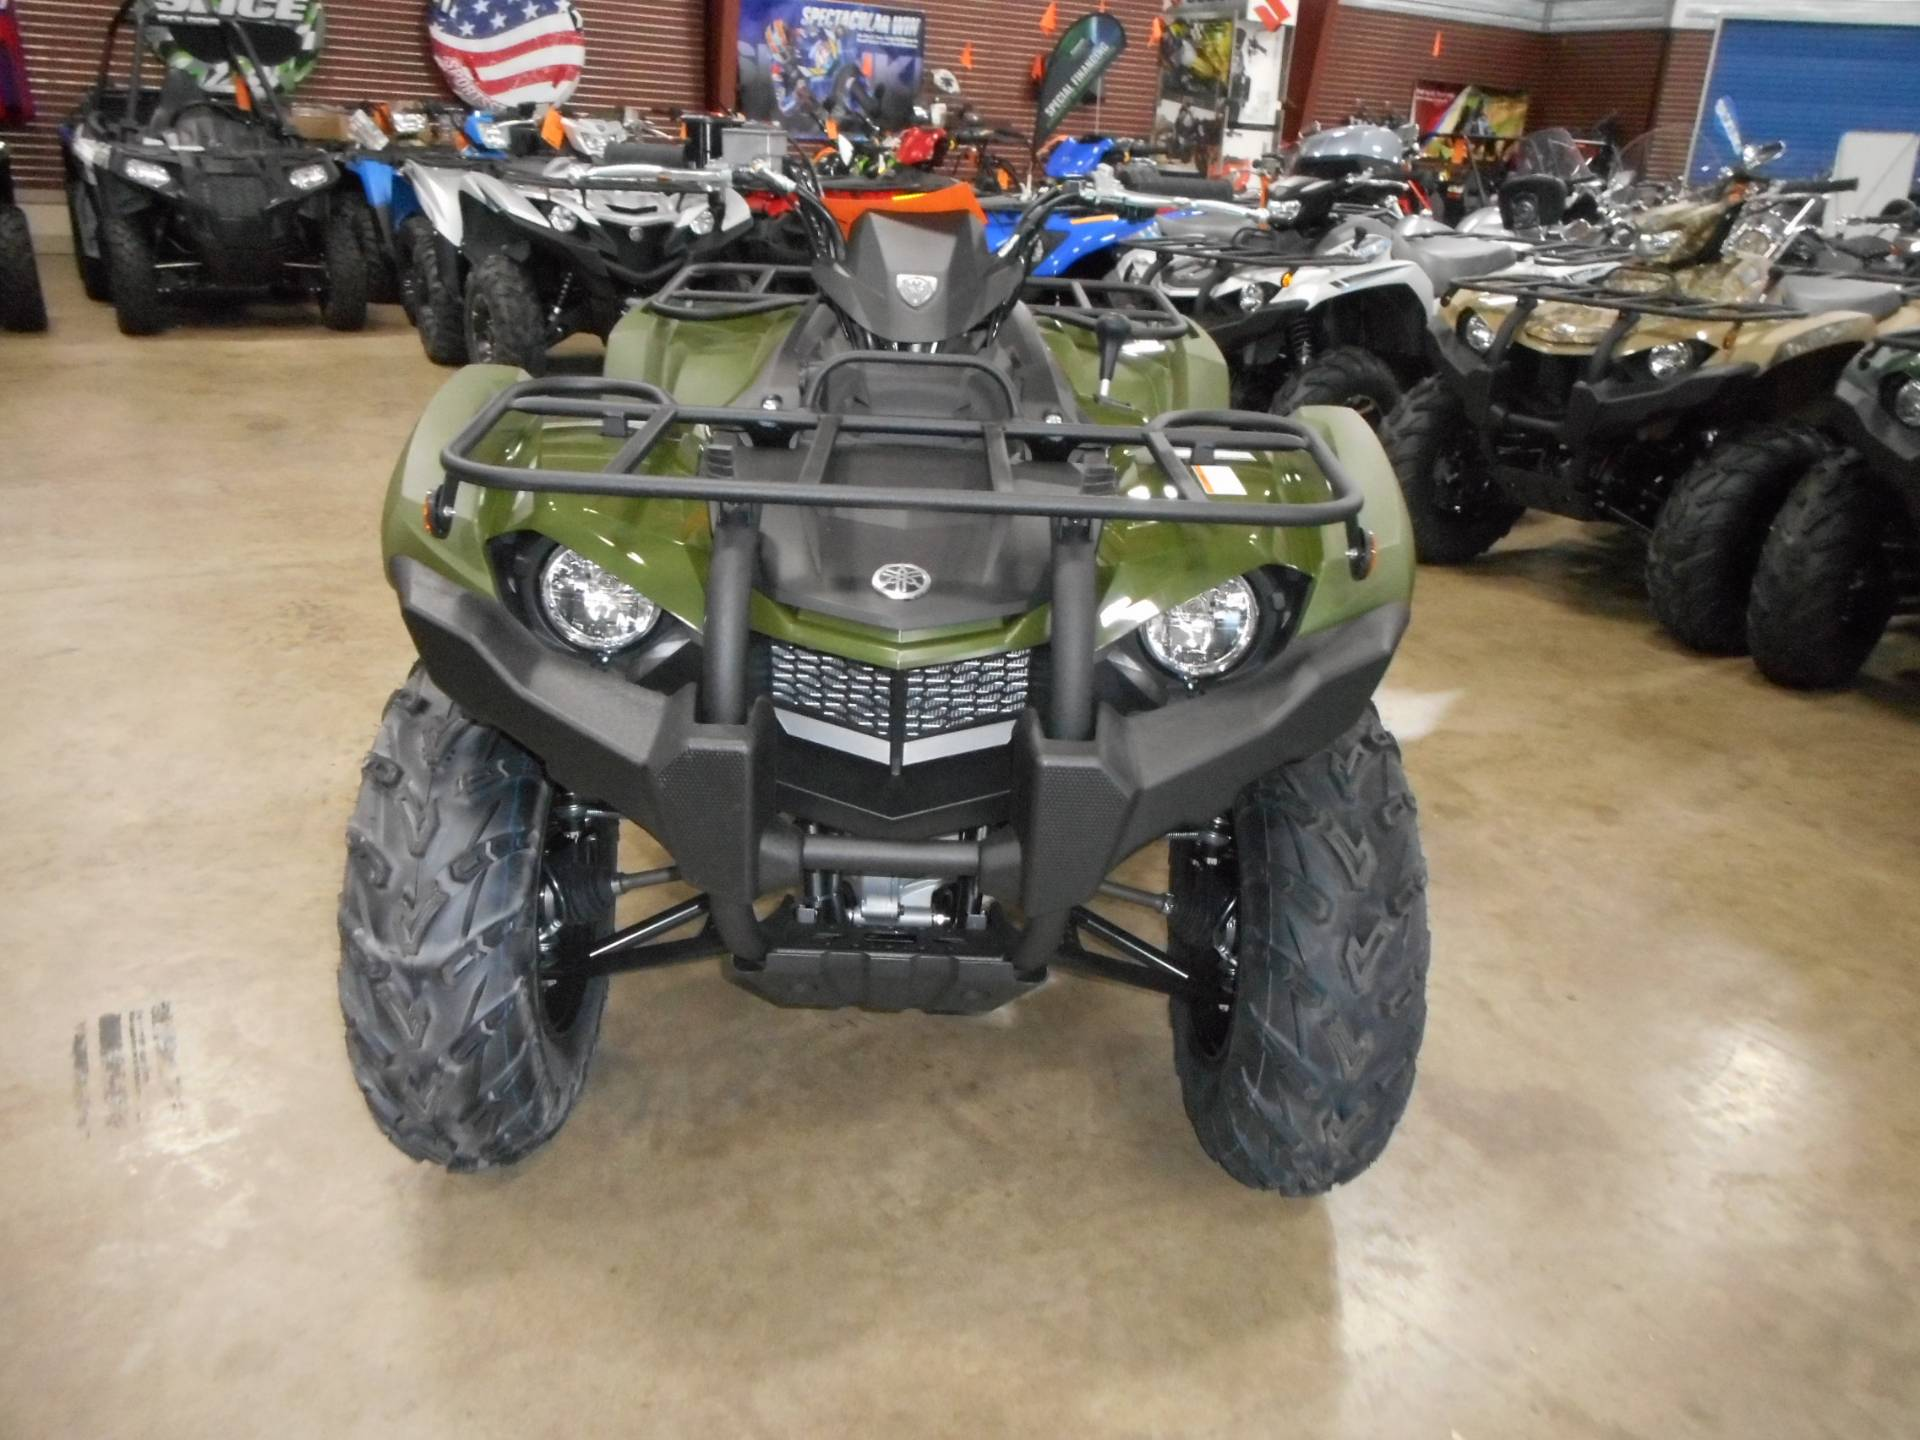 2020 Yamaha Kodiak 450 in Belvidere, Illinois - Photo 7